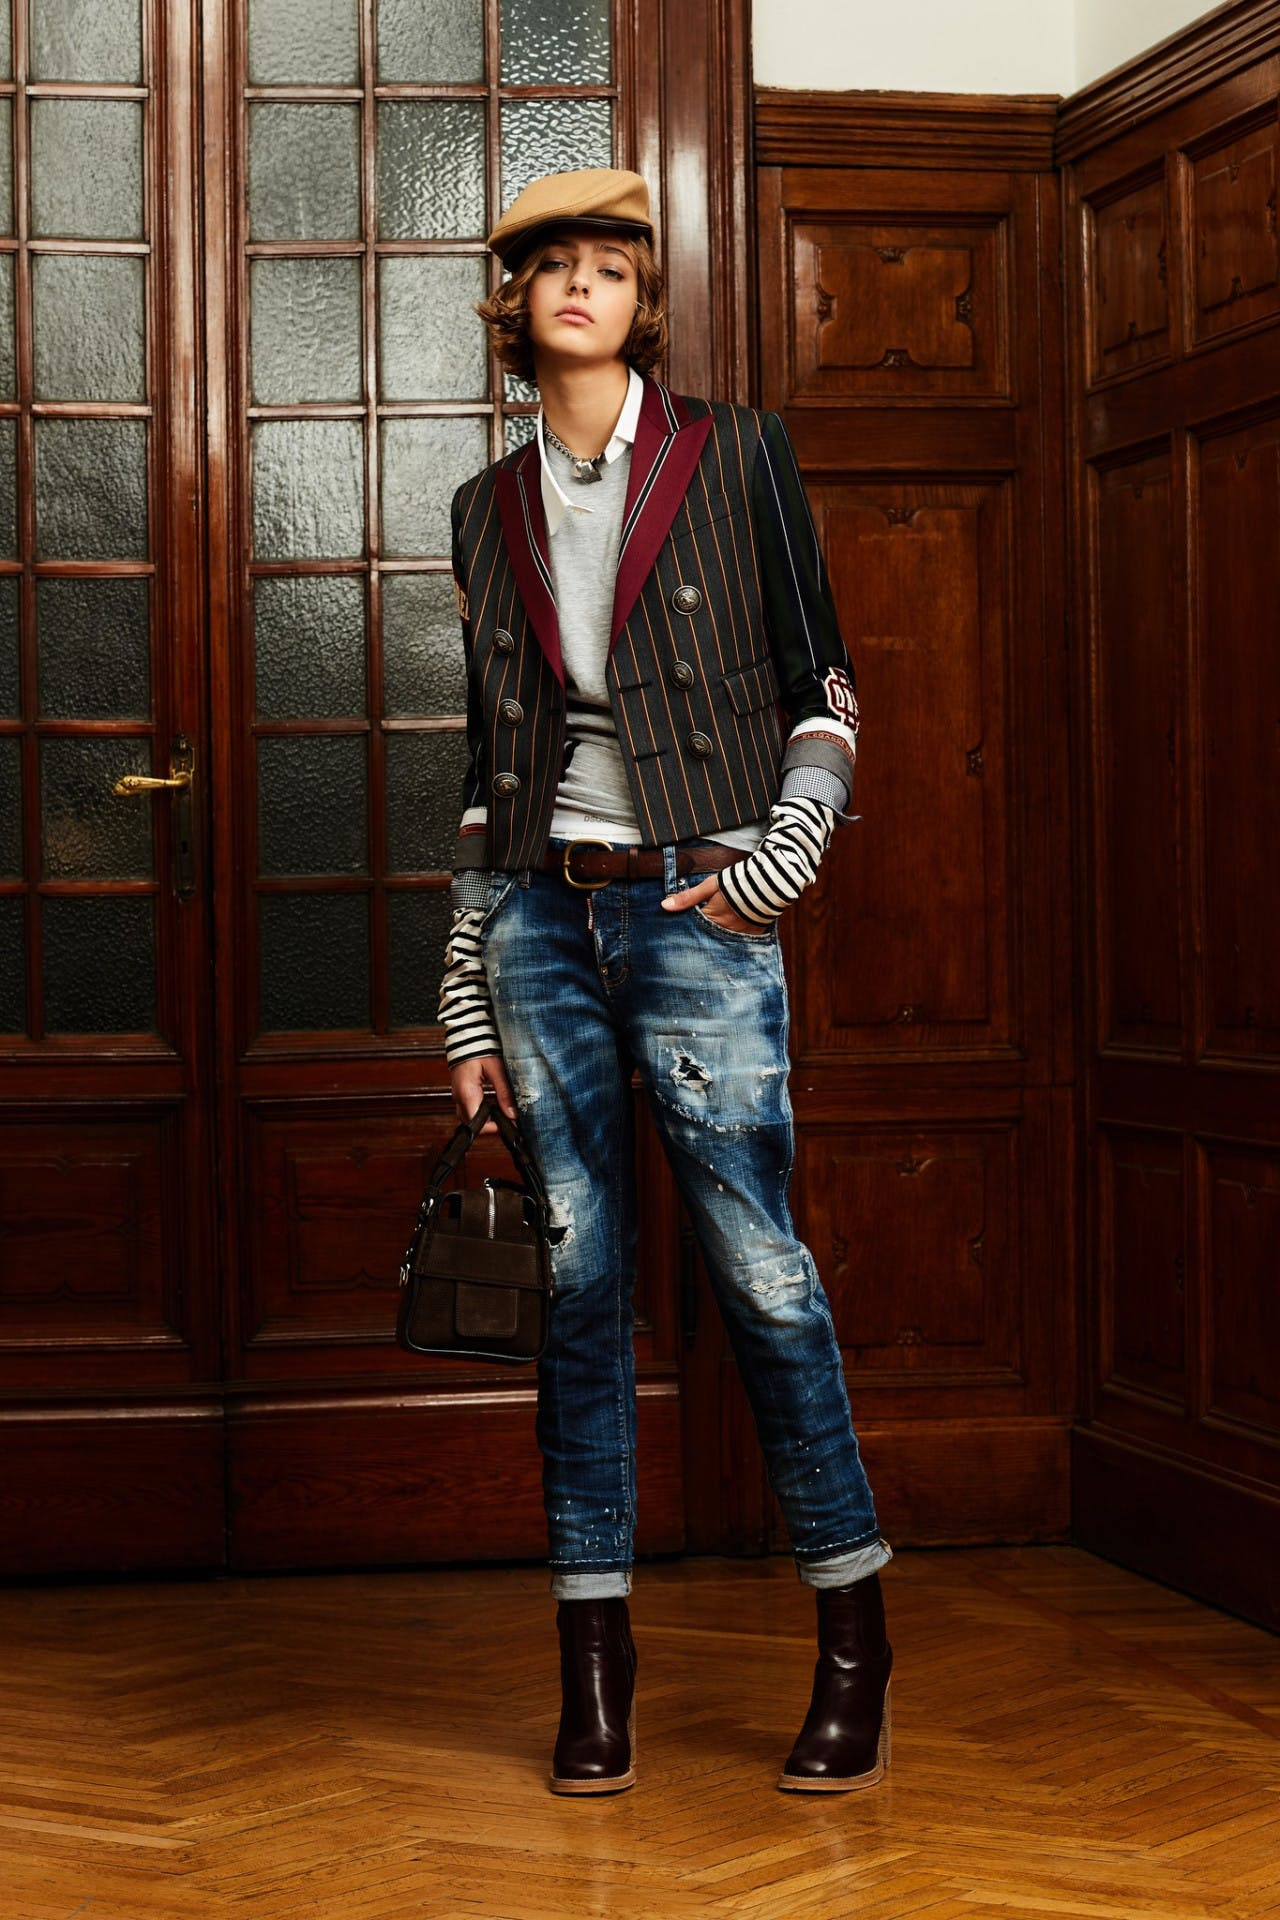 dsquared2 pre fall milan fashion runway backstage pre order showroom trunk show womenswear stripe blazer